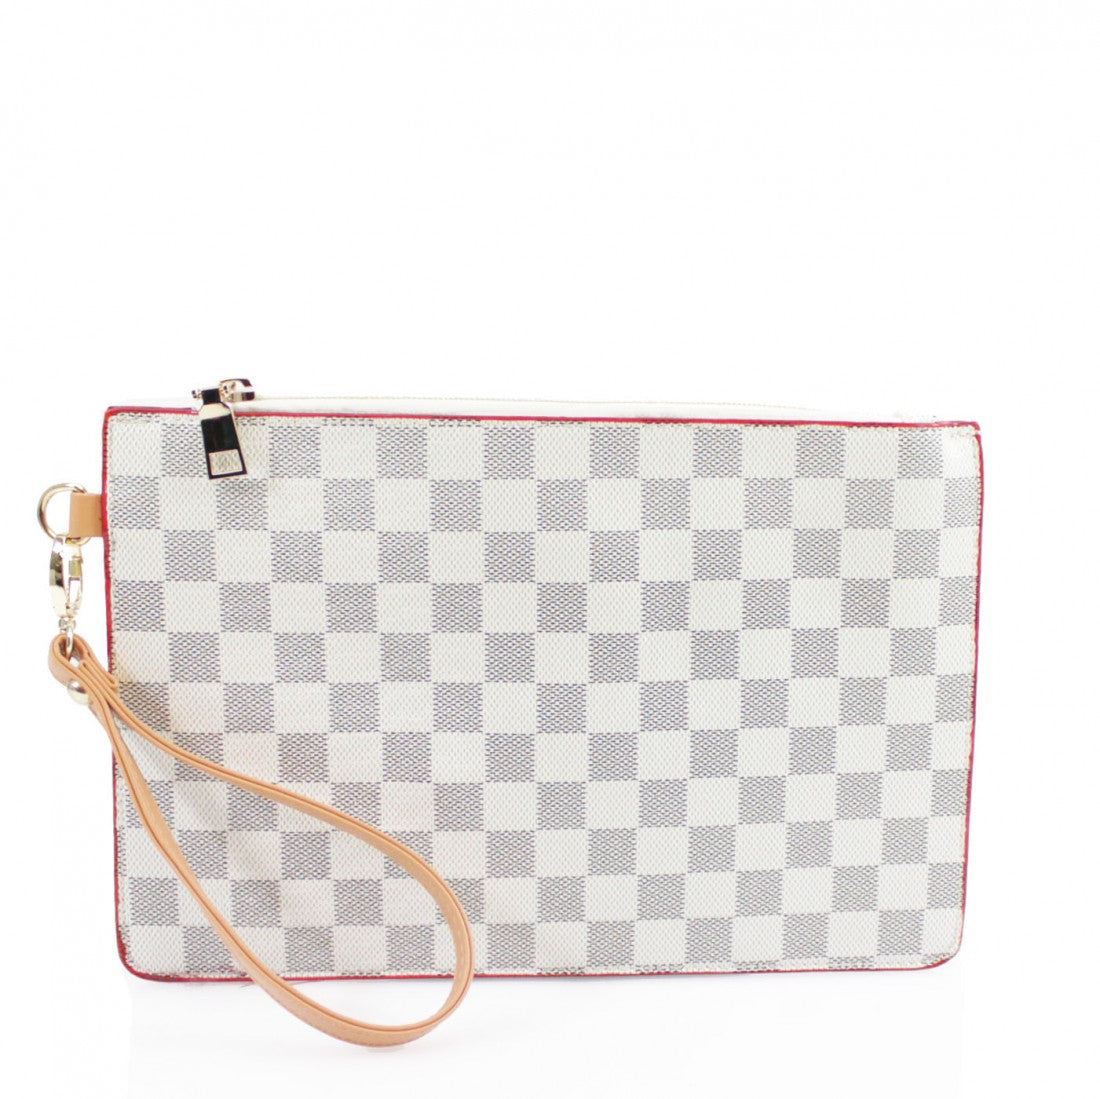 c48b2d76c332 Margot Louis Vuitton Inspired Clutch Bag - White Check – Style Of Beyond